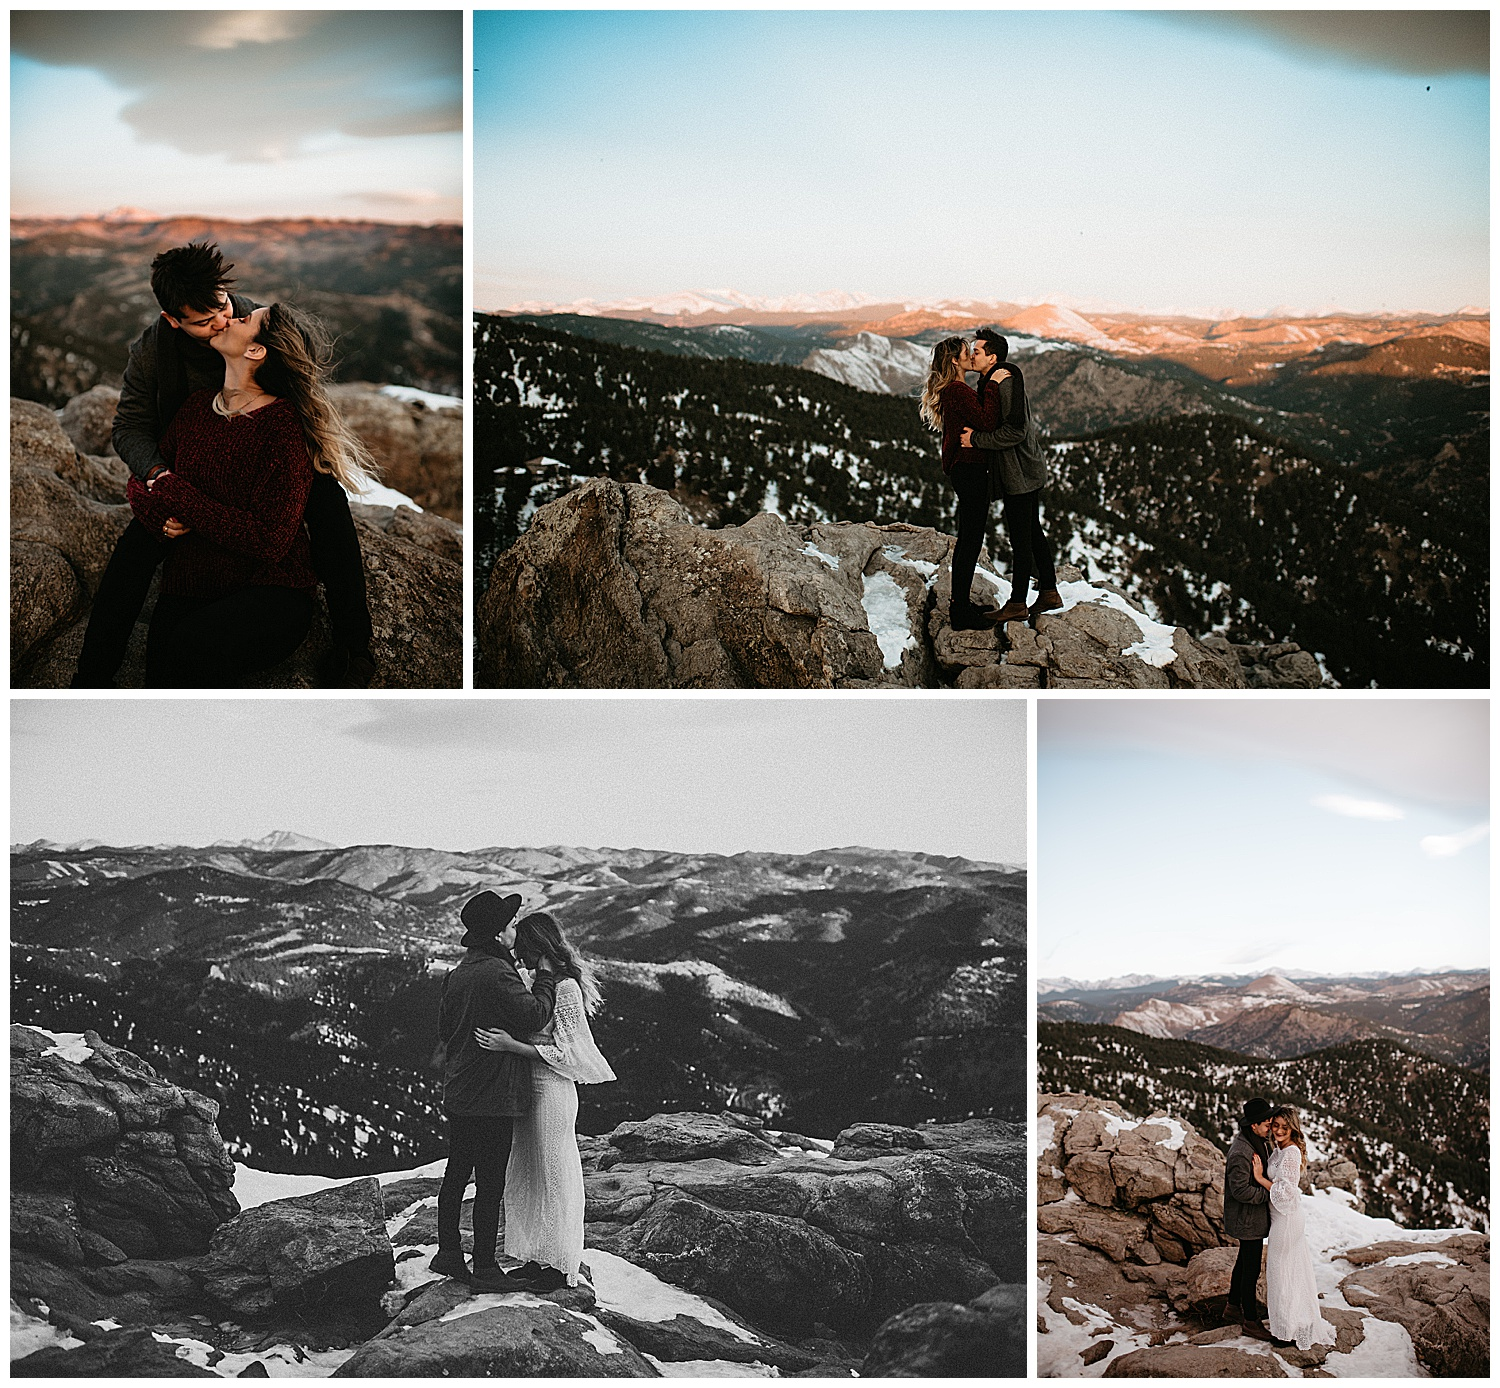 engagement-session-at-lost-gulch-lookout-boulder-co_0003.jpg